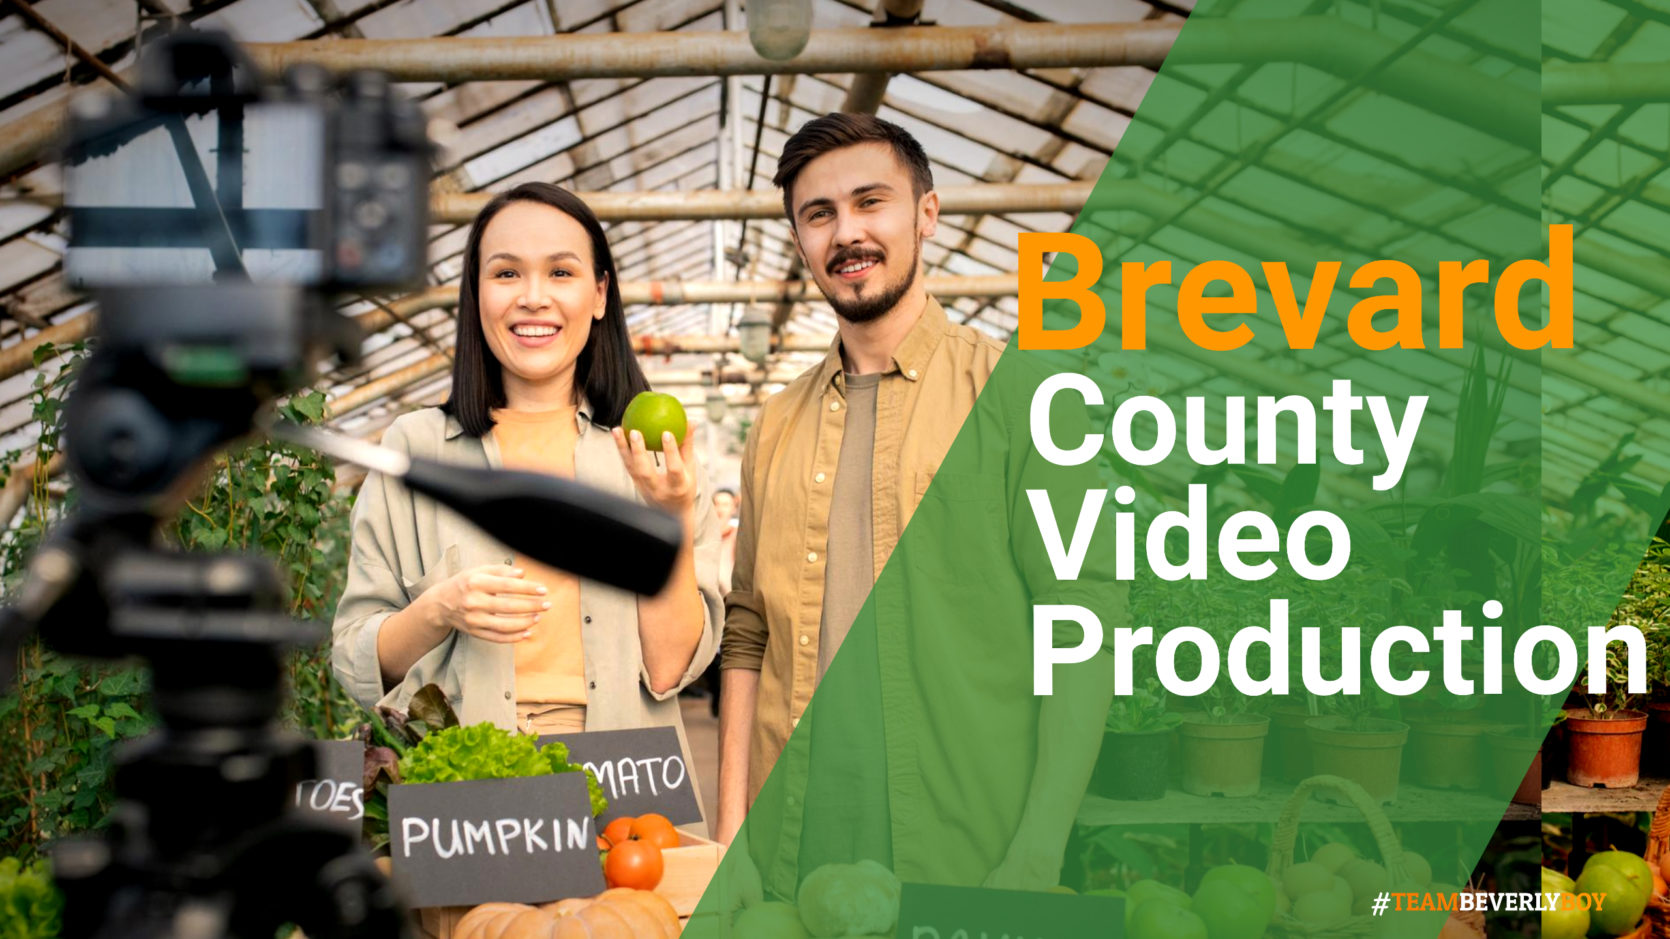 Brevard County video production